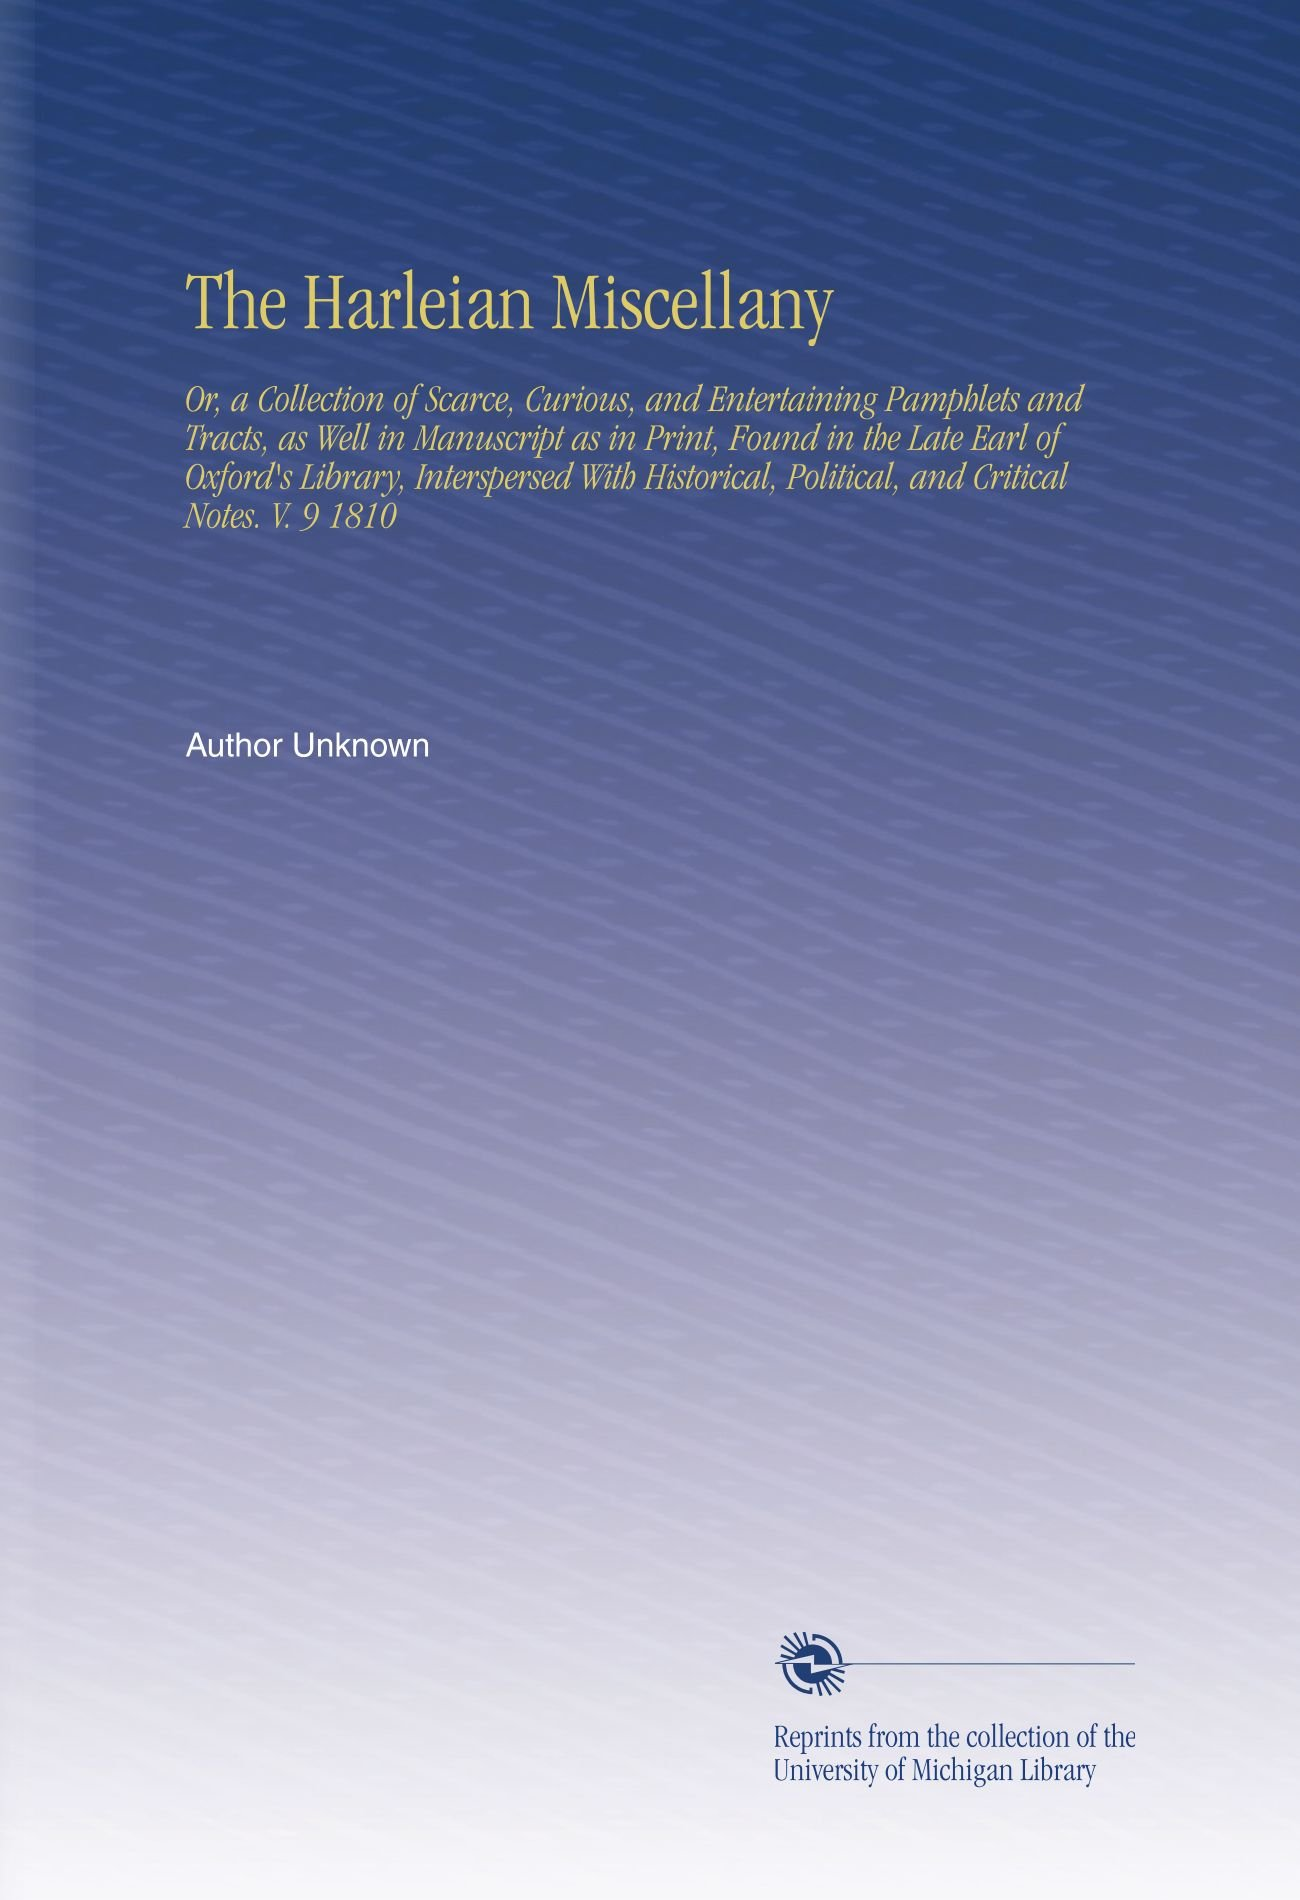 Download The Harleian Miscellany: Or, a Collection of Scarce, Curious, and Entertaining Pamphlets and Tracts, as Well in Manuscript as in Print, Found in the ... Political, and Critical Notes. V. 9 1810 PDF